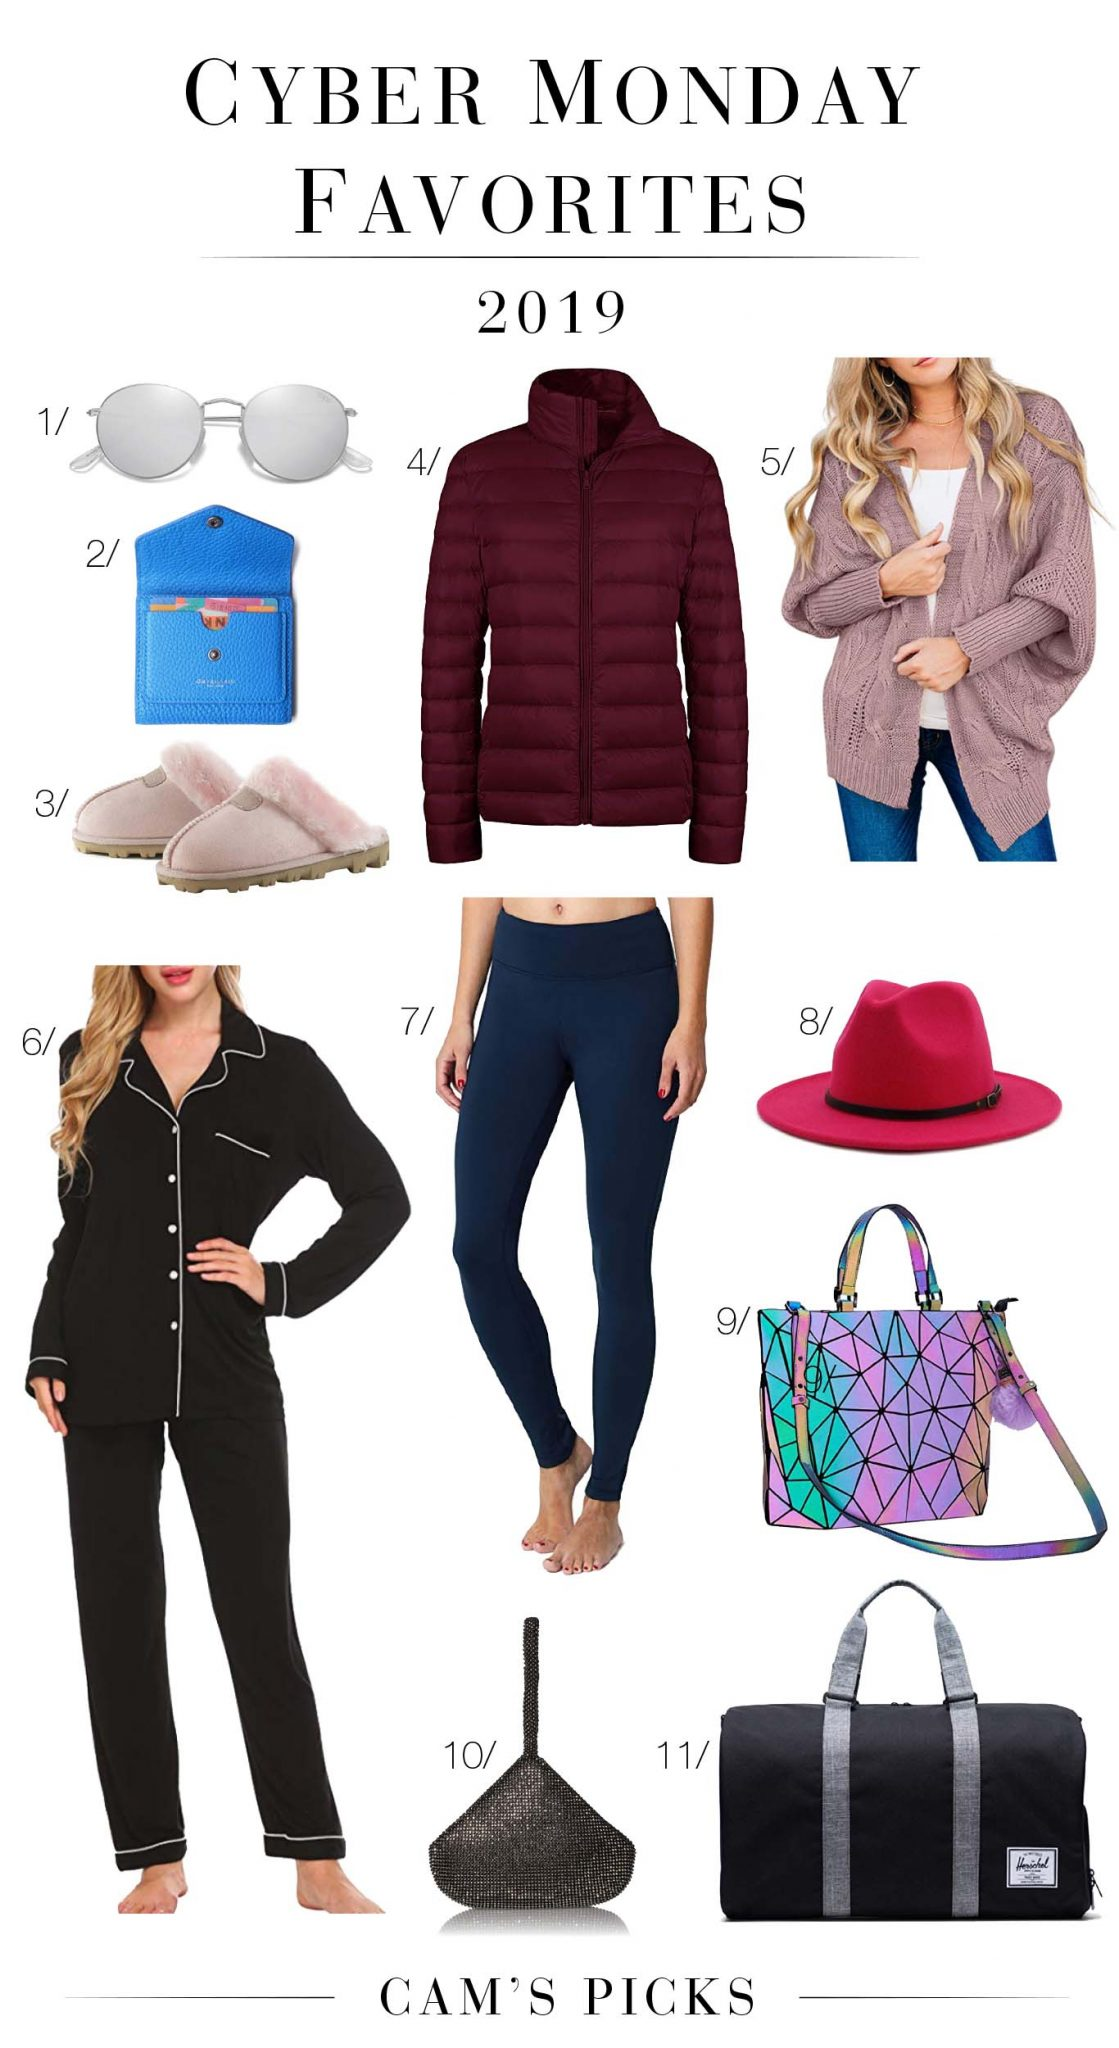 I went straight to Amazon, b/c...well, they already take all our money. Here are all the Cyber Monday deals I think could be ur next fav thing to wear & use on the reg...